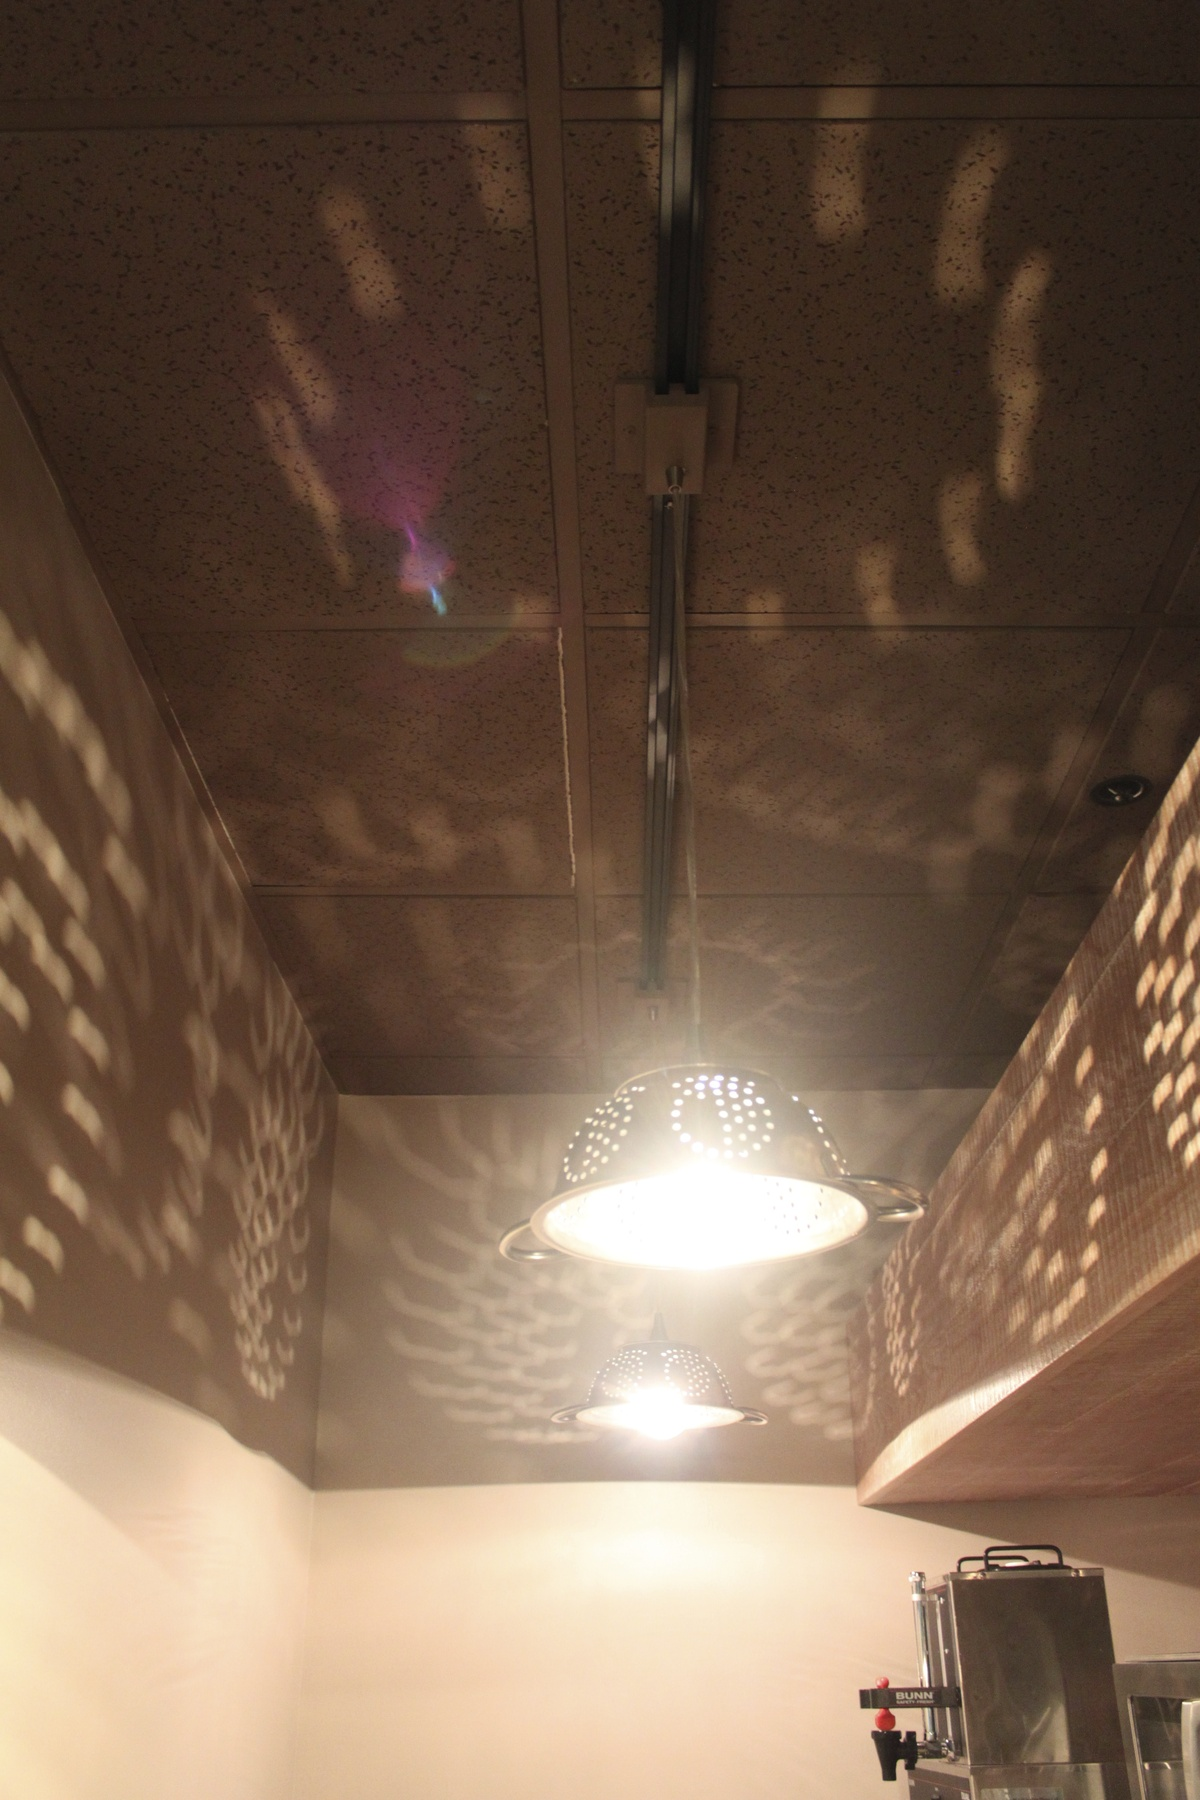 I designed colander lights for the heating and condiment section.